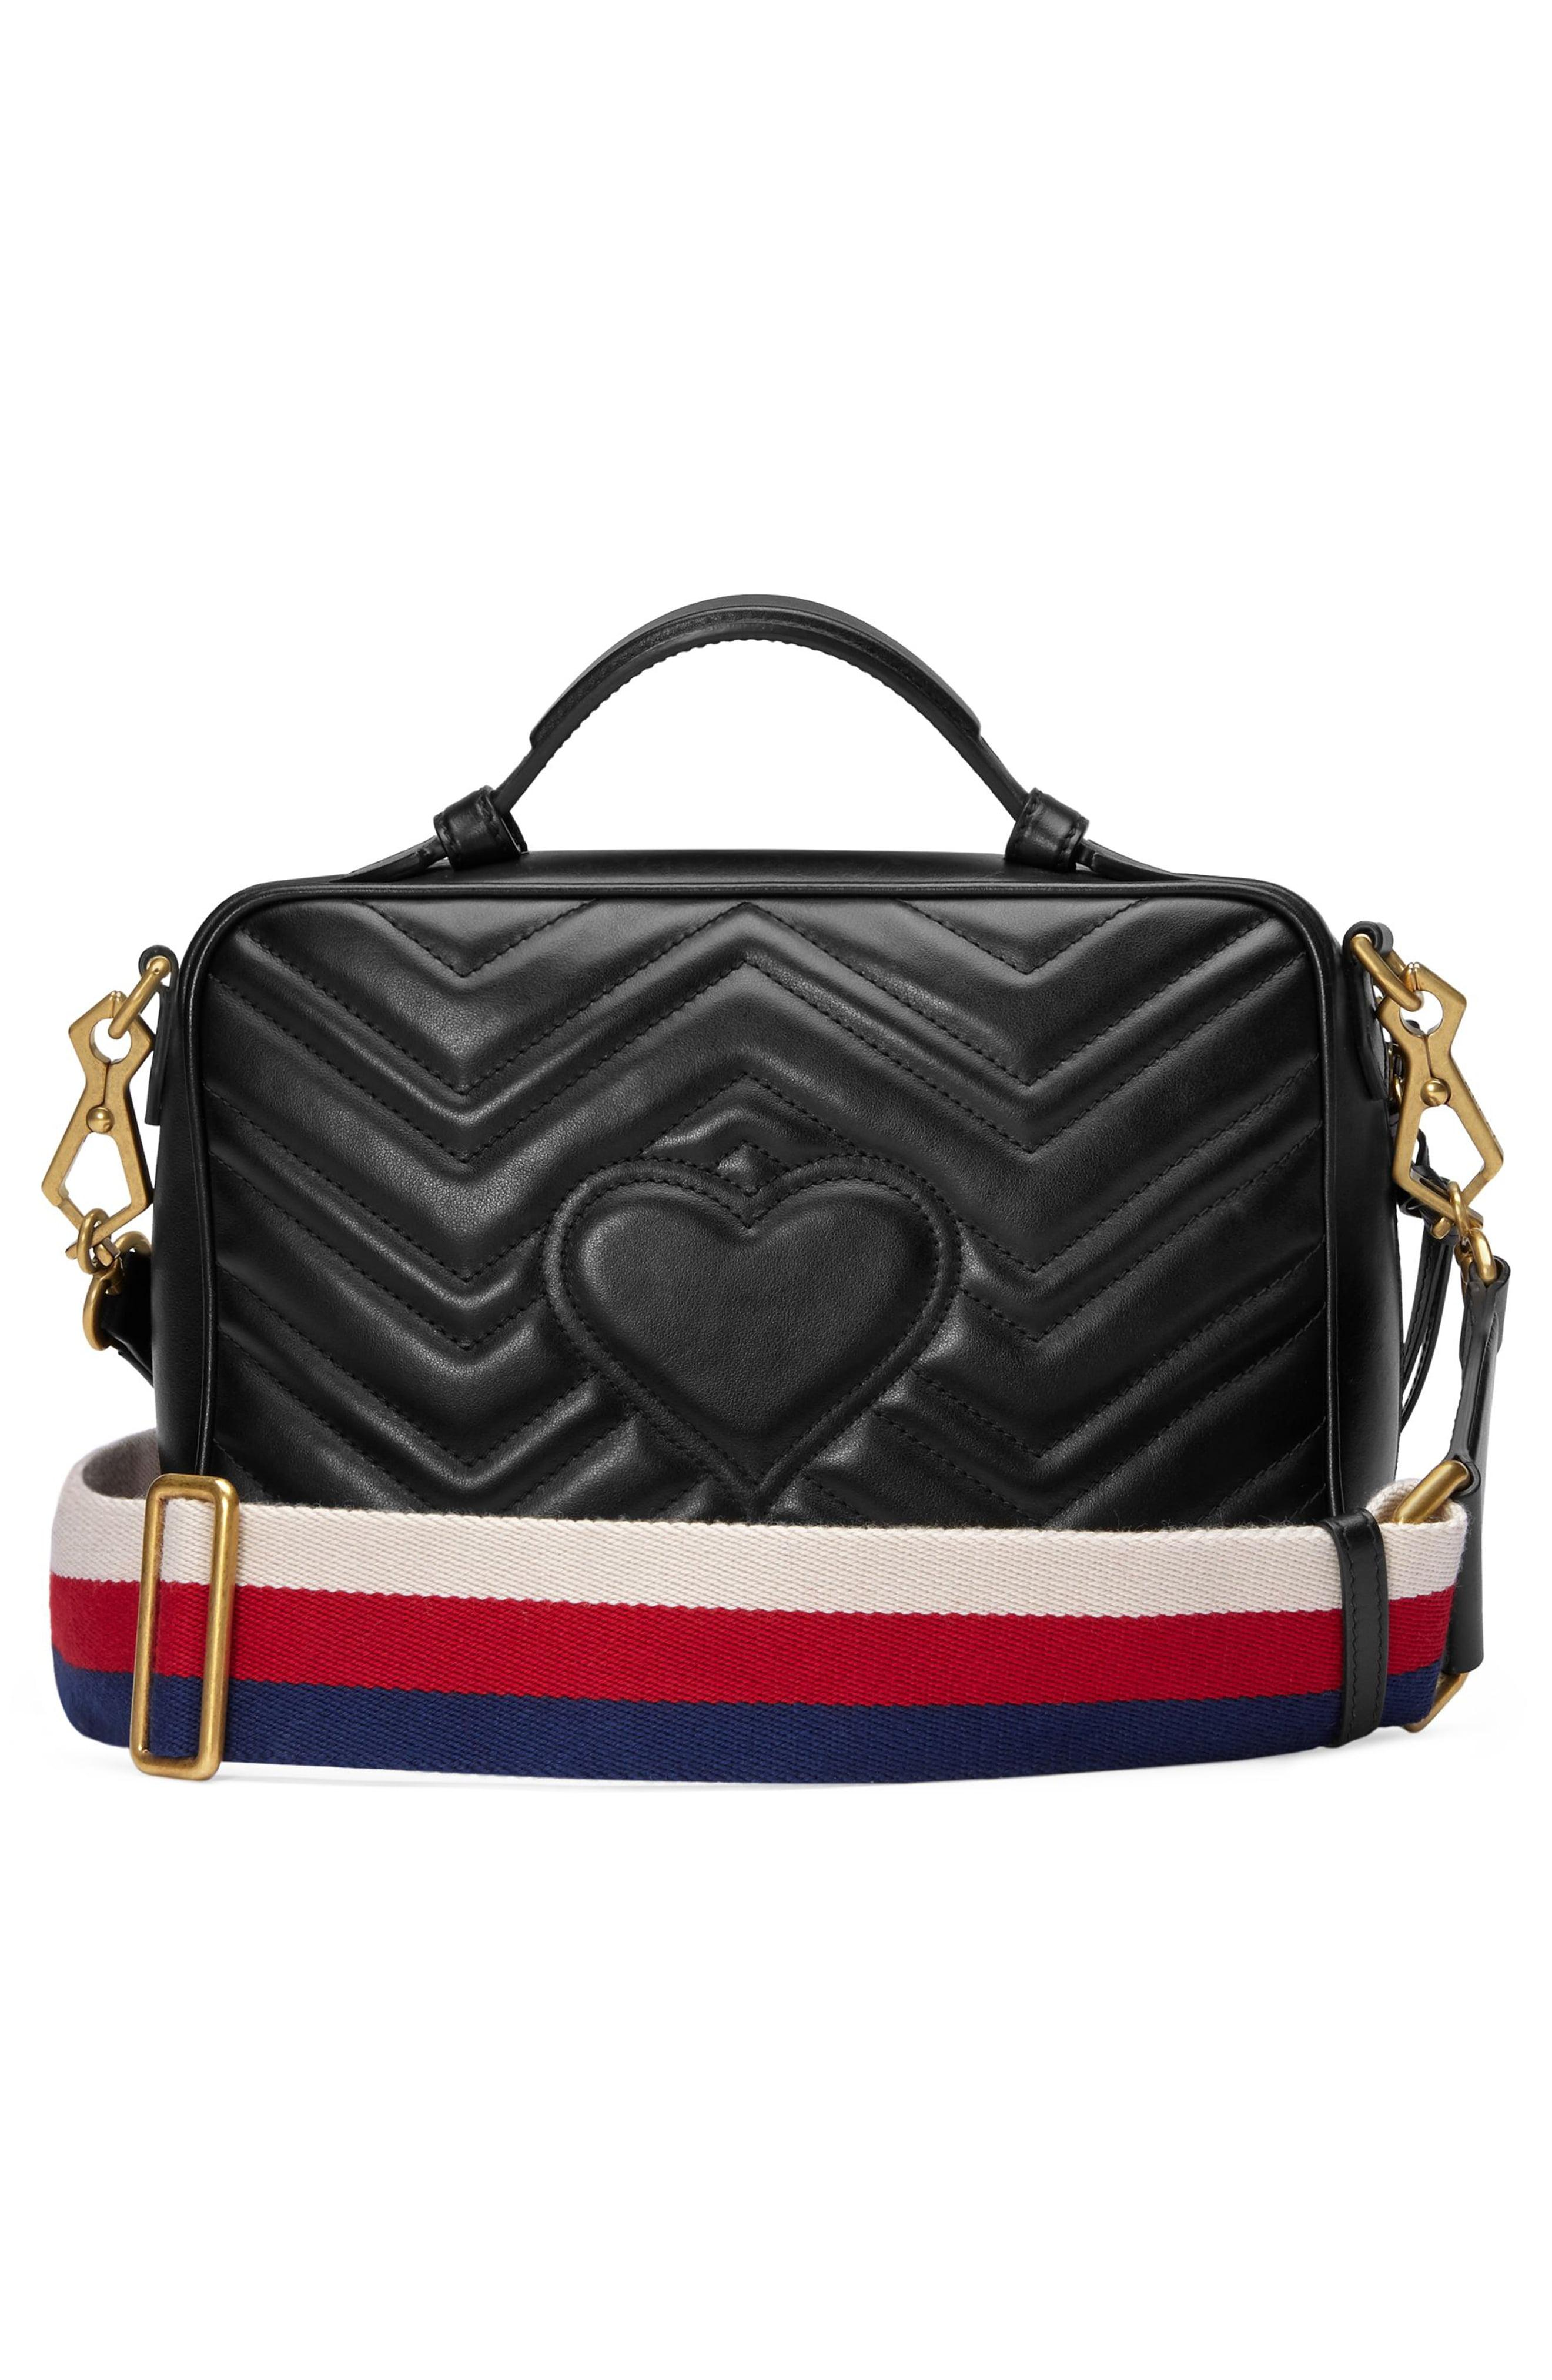 5924f006a0ee Gucci - Black Small Gg Marmont 2.0 Matelassé Leather Camera Bag With Webbed  Strap - -. View fullscreen